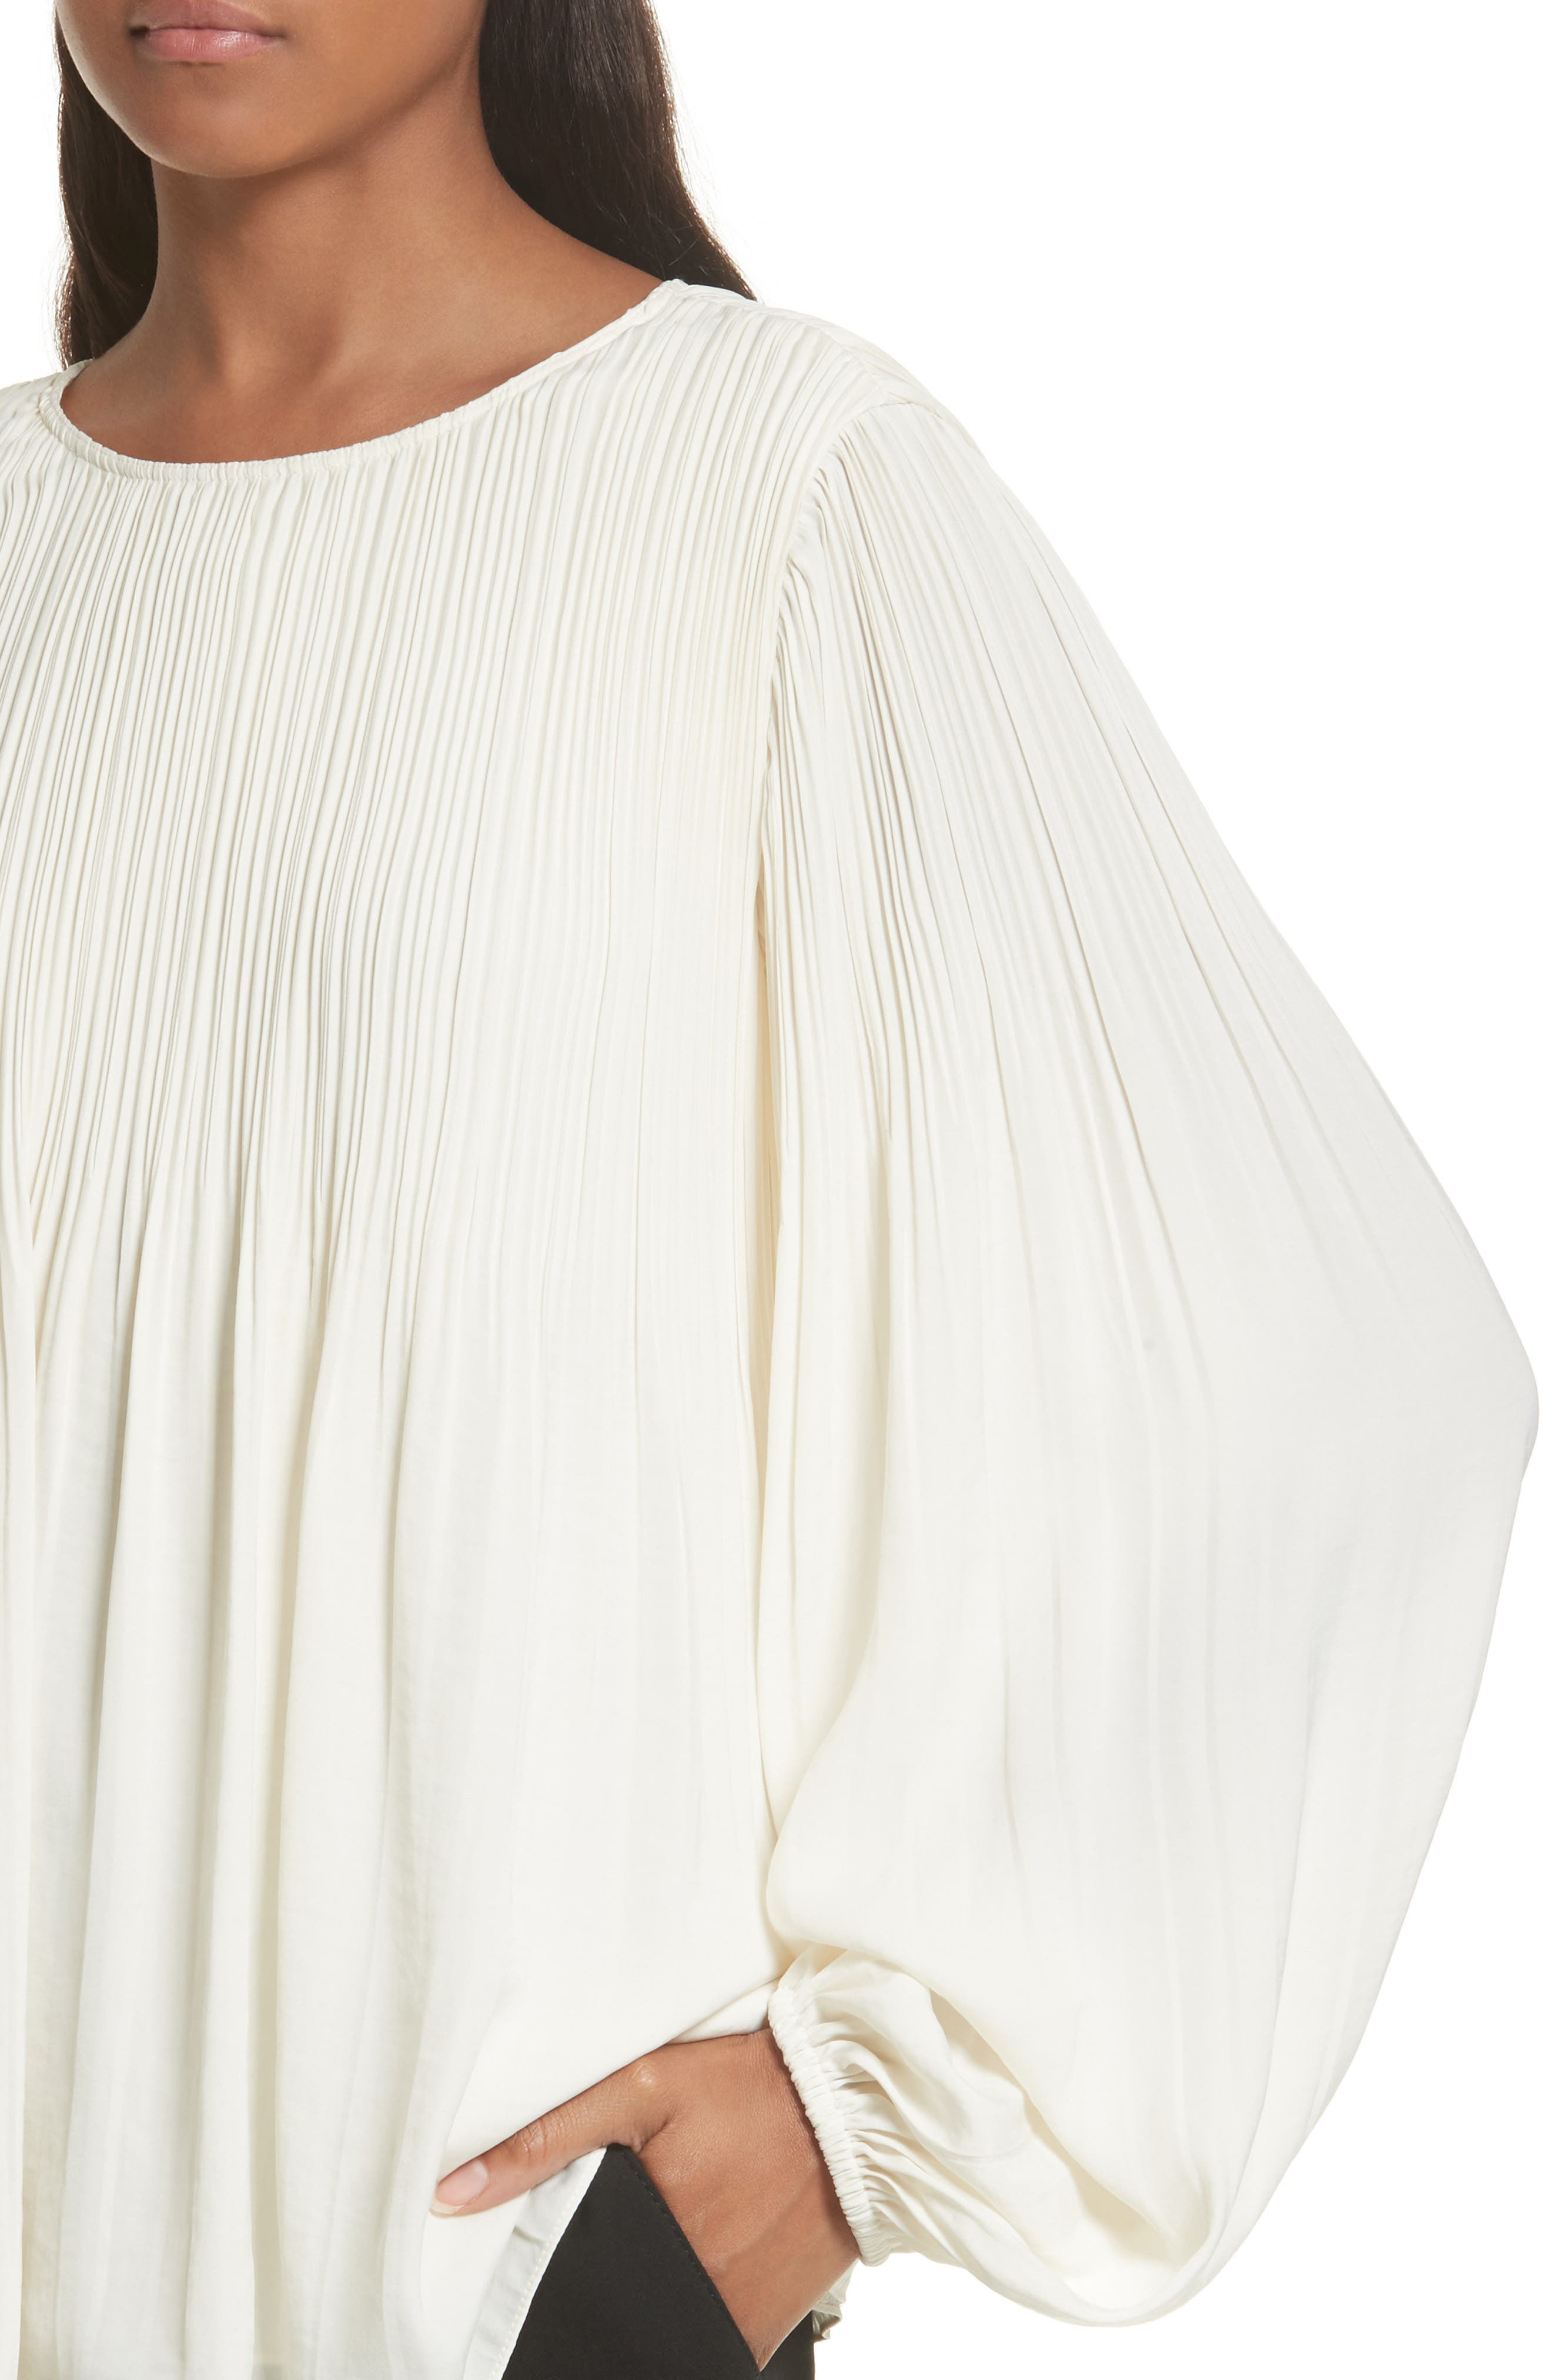 Grove Pleated Blouse,                             Alternate thumbnail 4, color,                             Alabaster